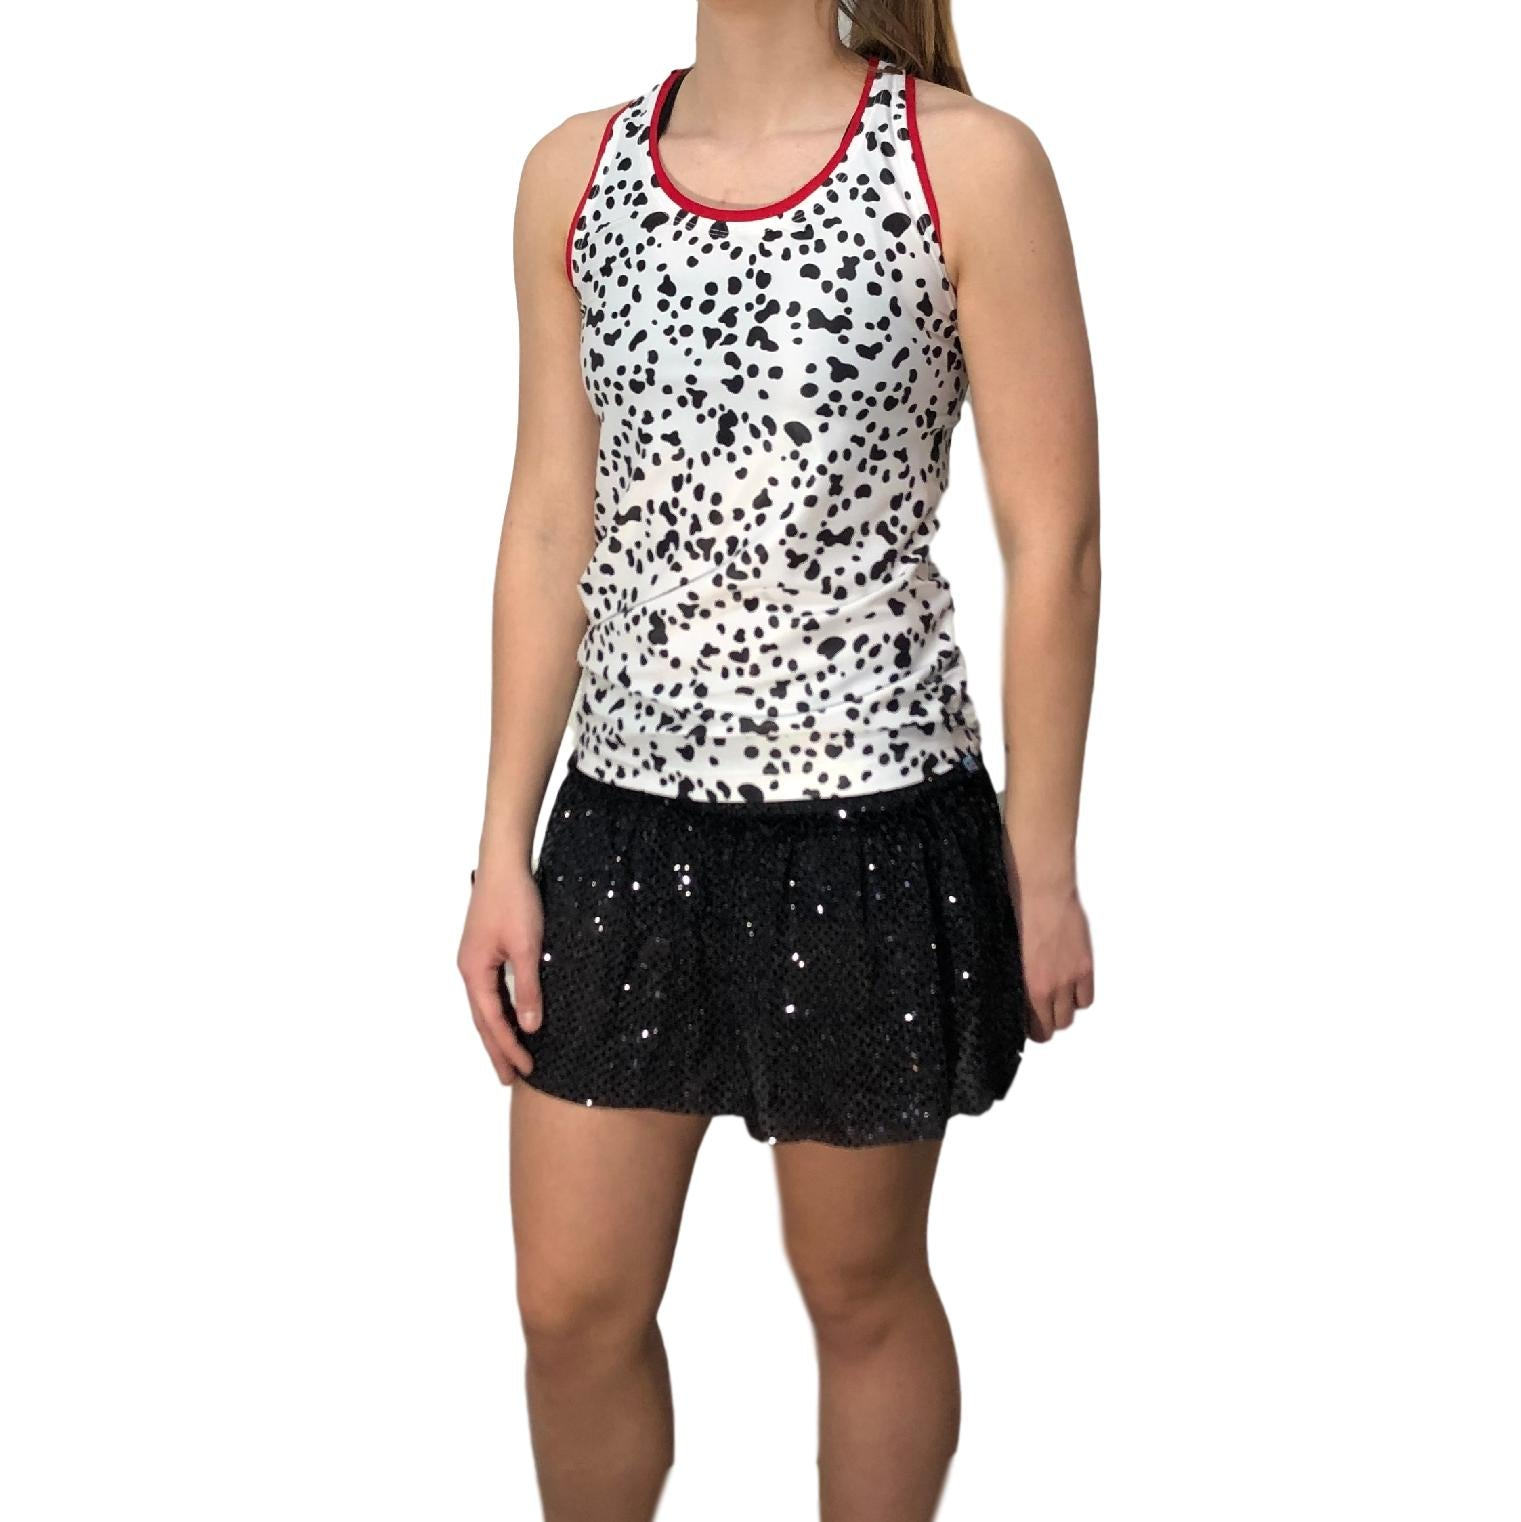 Dalmatians Inspired Costume- Racerback And Skirt - Rock City Skirts